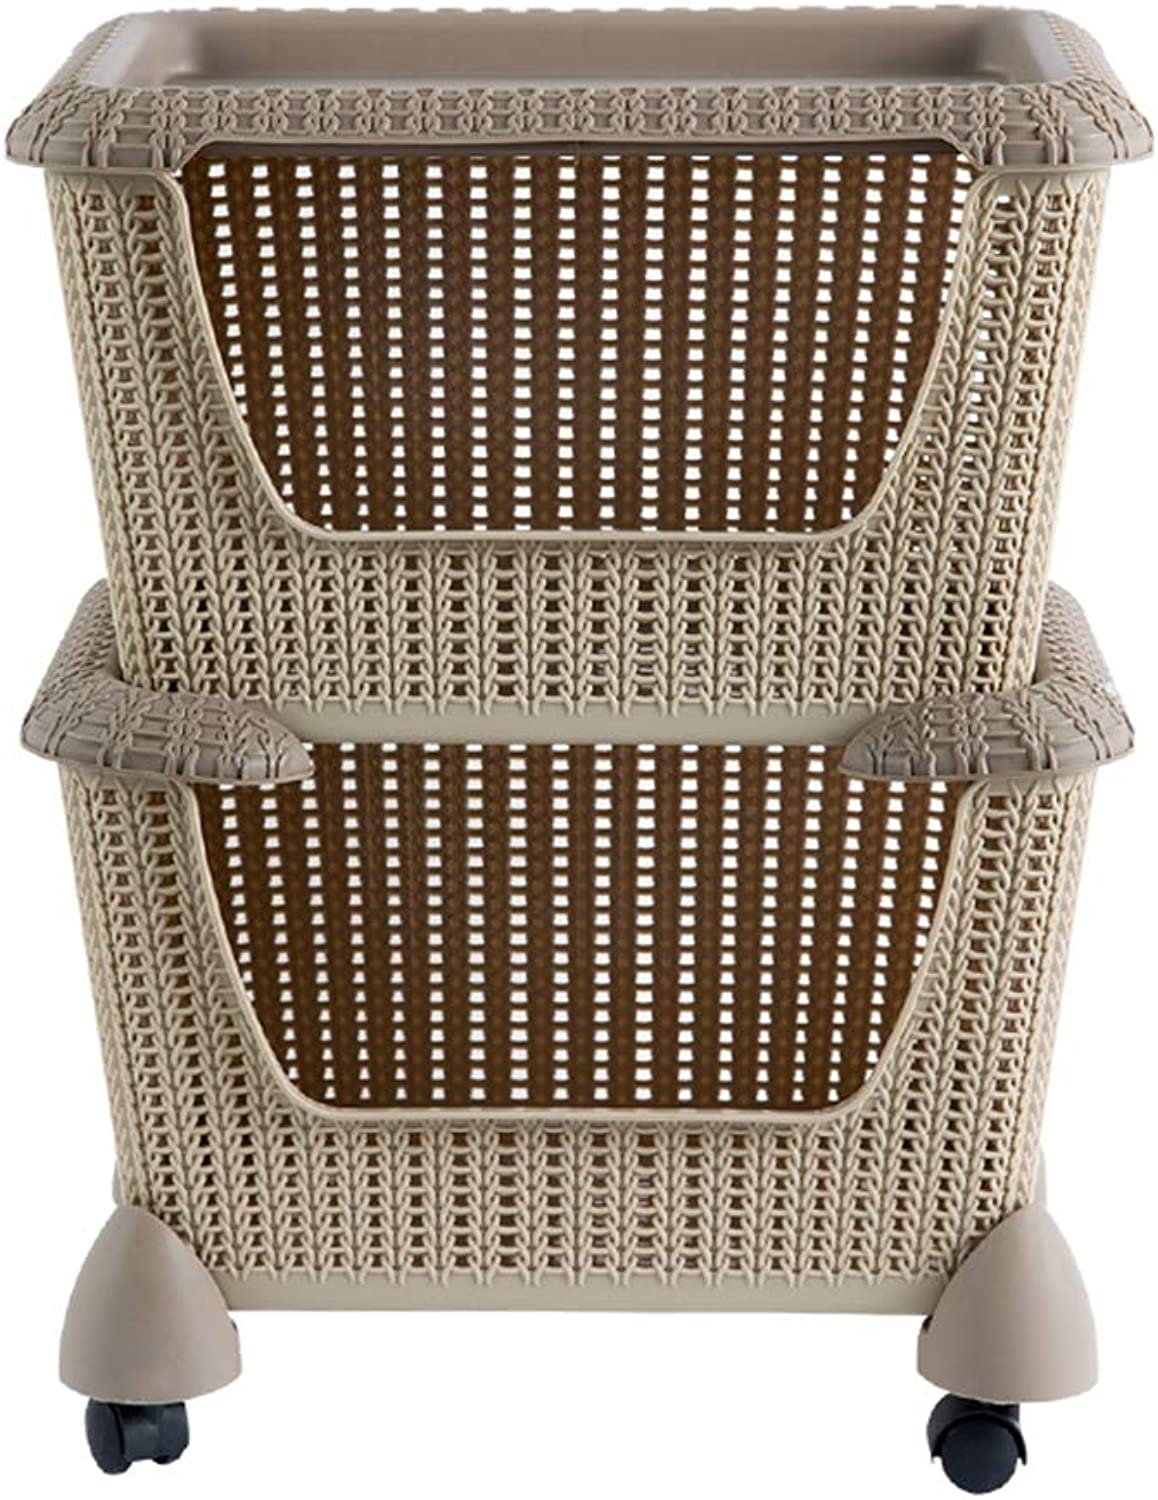 2 3 4-Tier Stackable Storage Baskets Rolling Cart, Rolling Storage Trolley for Kitchen & Bathroom - Utility Storage Cart with Wheels & Shelves,Brown,2Tier